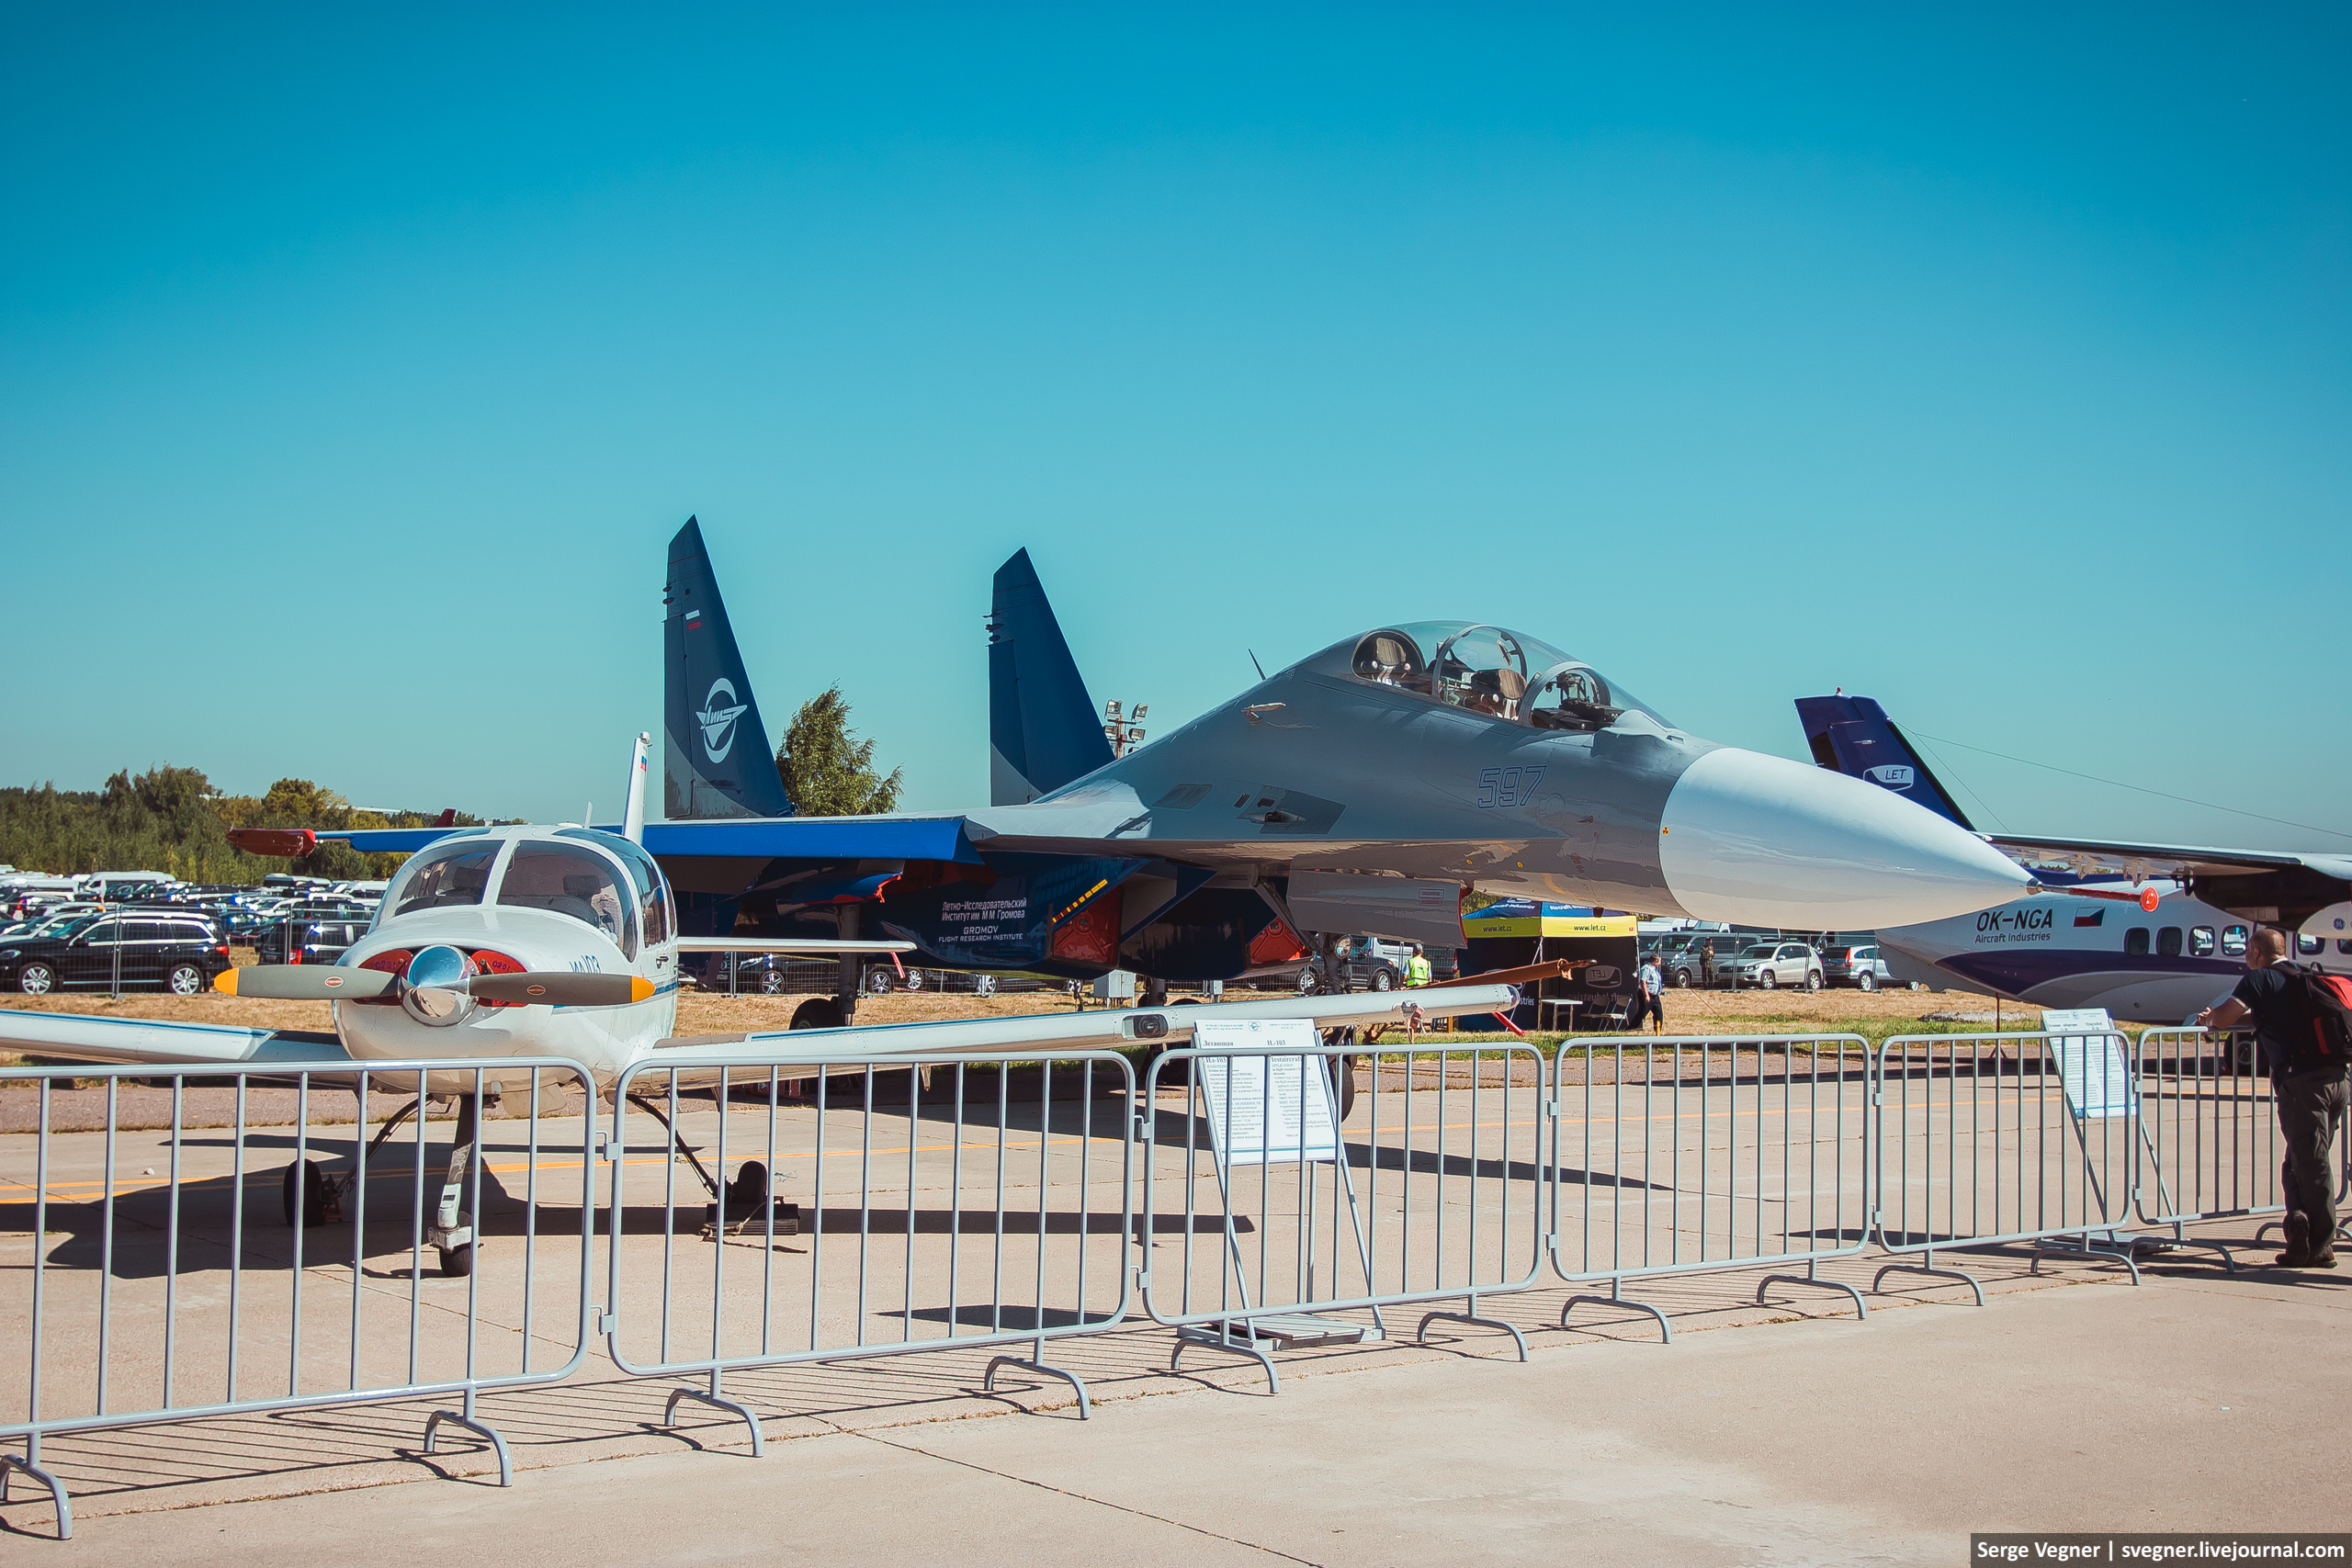 MAKS-2015 Air Show: Photos and Discussion - Page 3 0_f5abc_76ccd3b1_orig